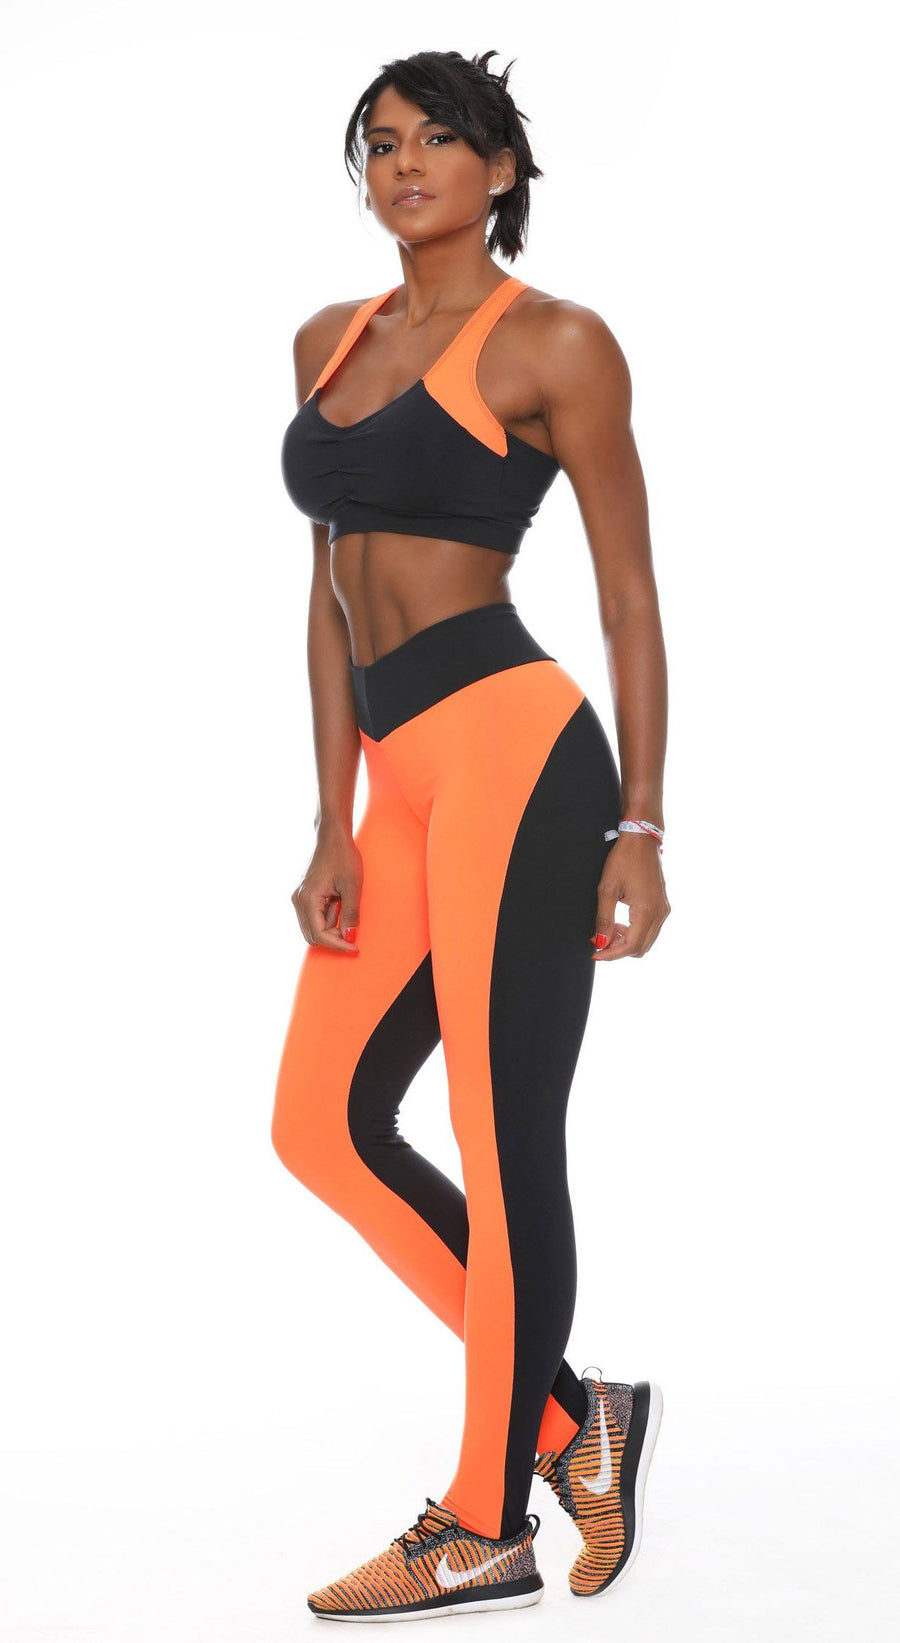 Brazilian Sports Bra - Top Fit One Black & Orange